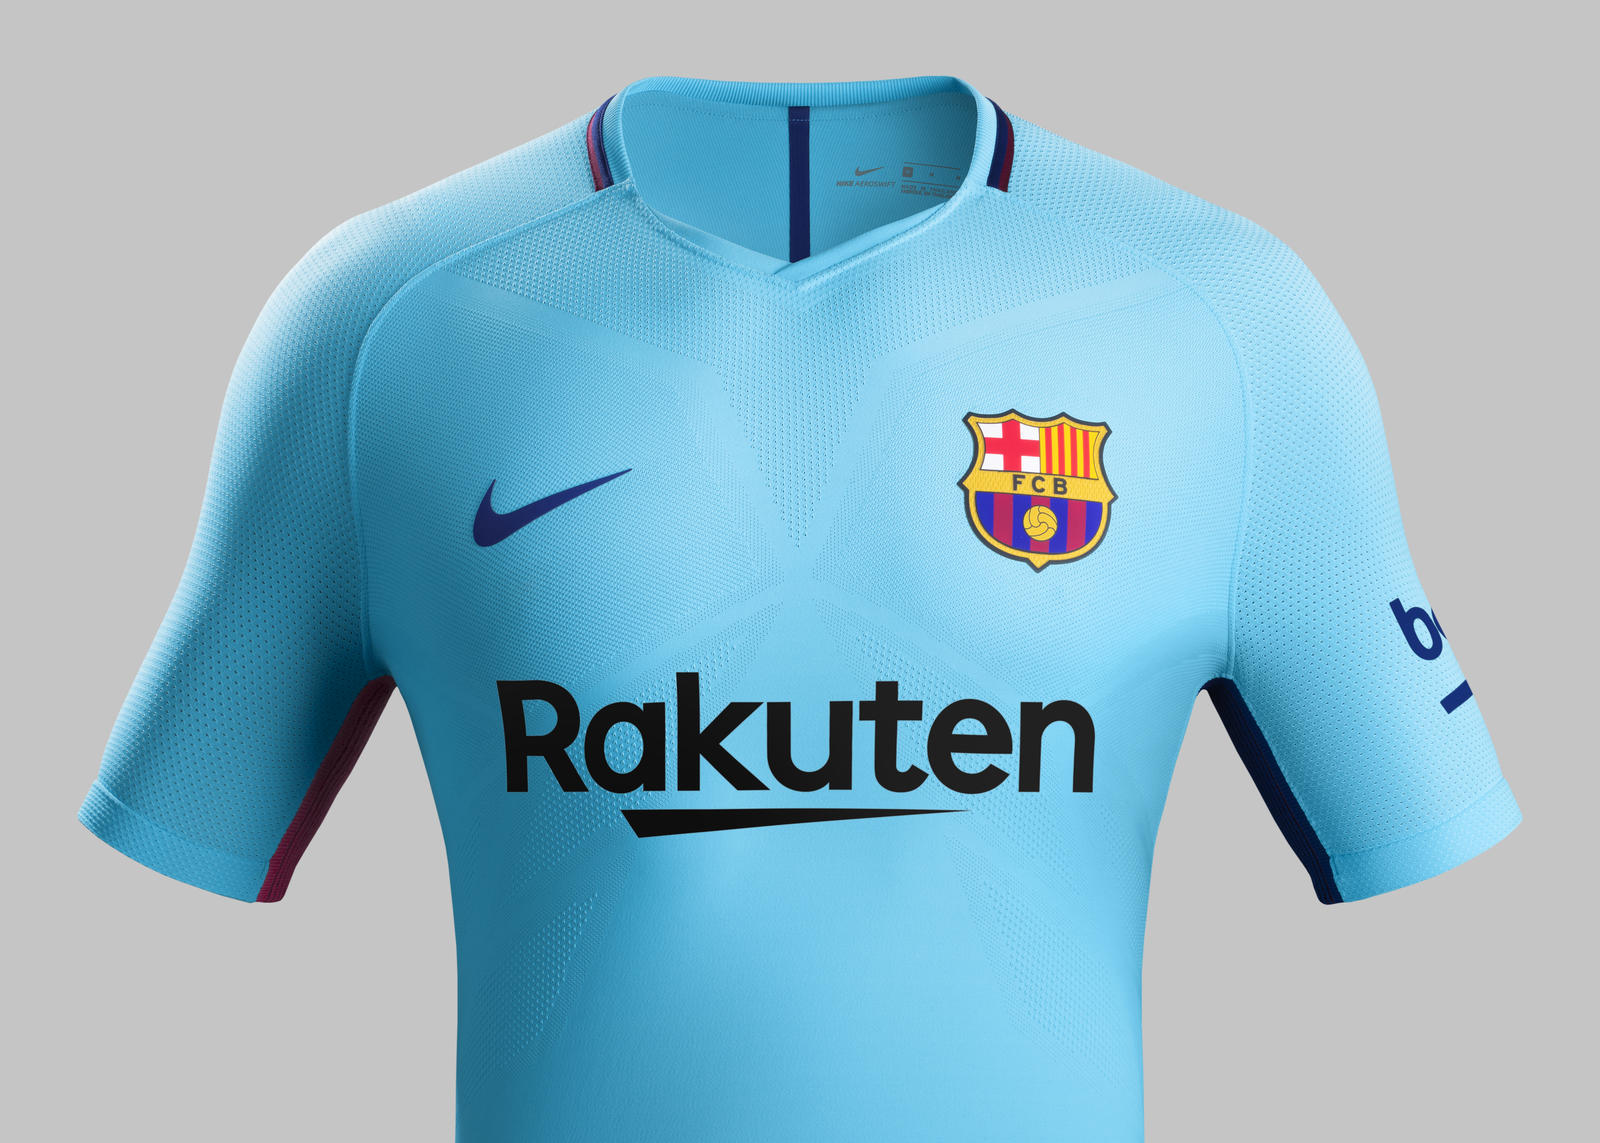 Fy17 18 club kits a front match fcb r rectangle 1600